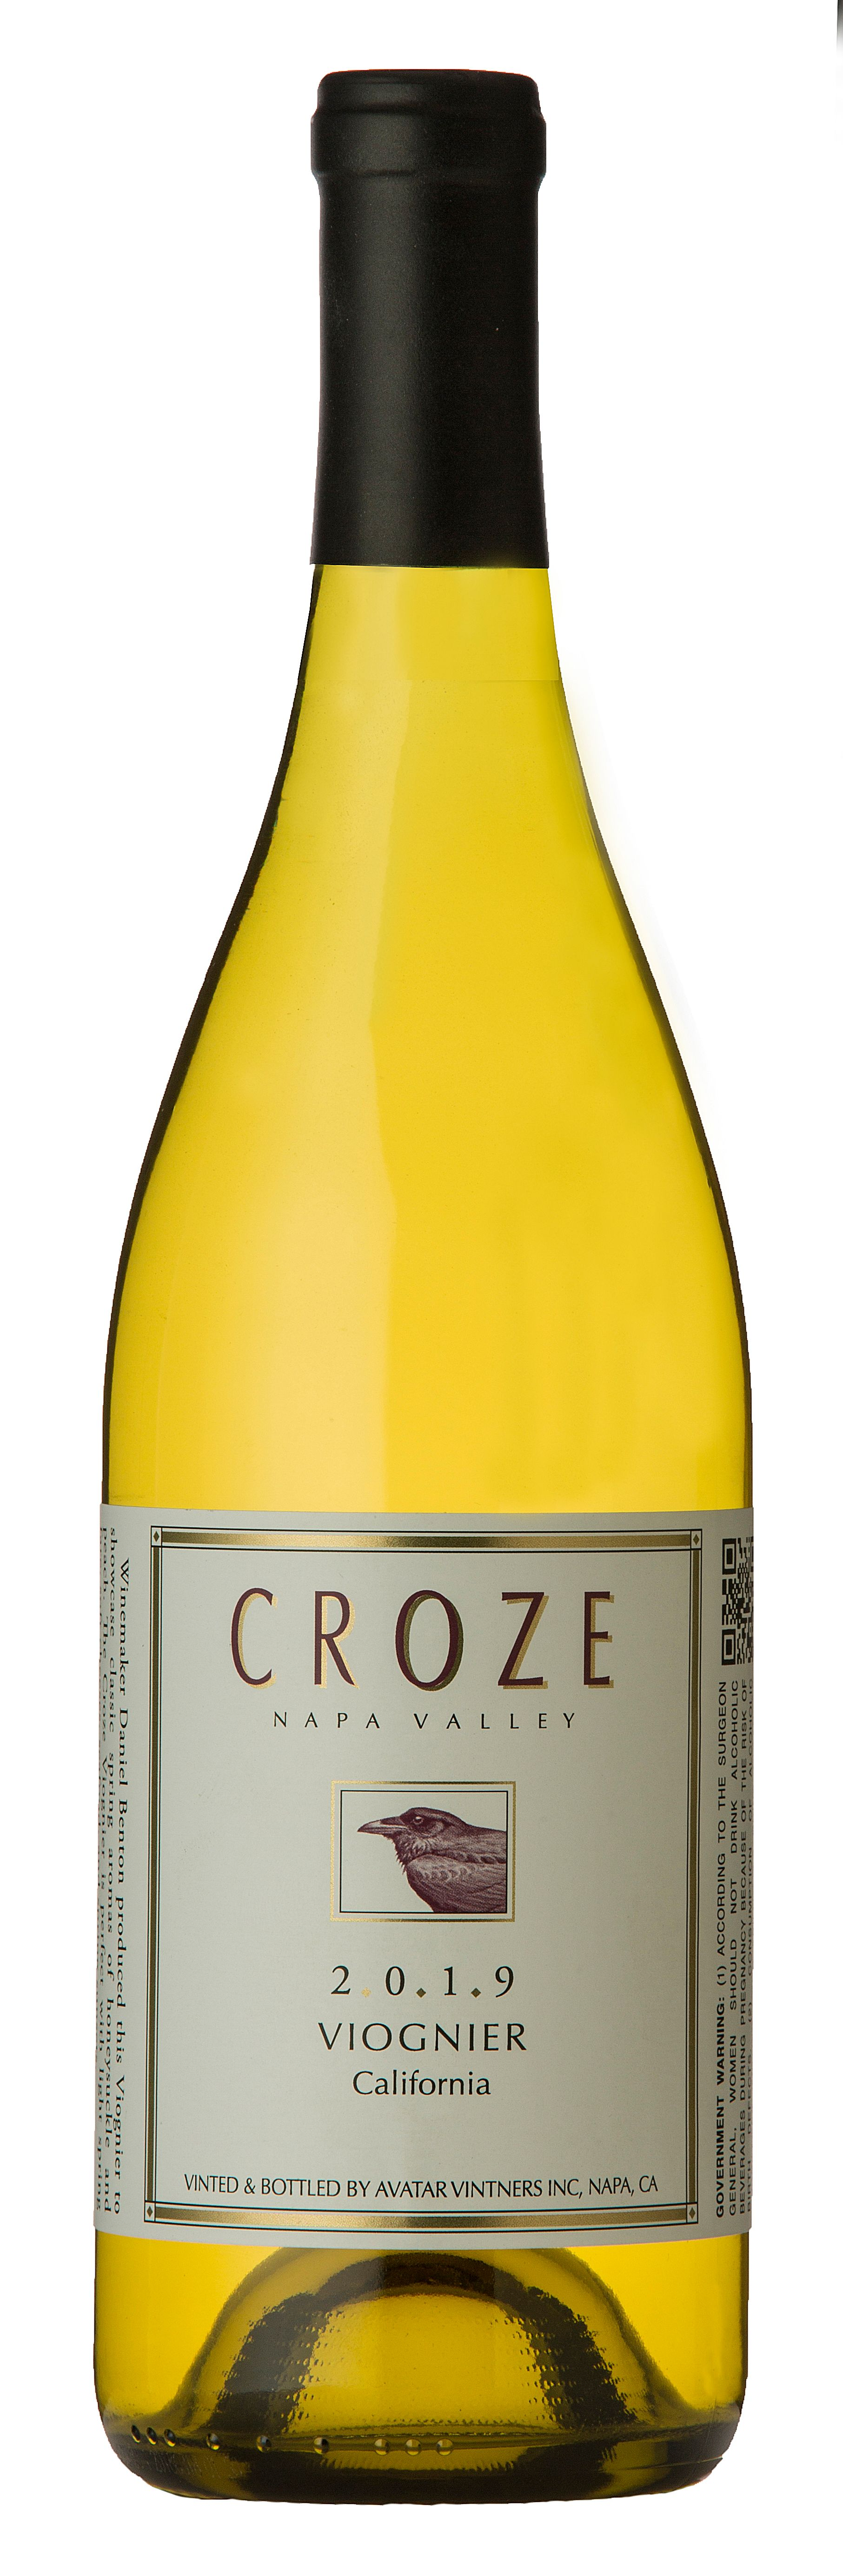 Product Image for 2019 CROZE Viognier, California